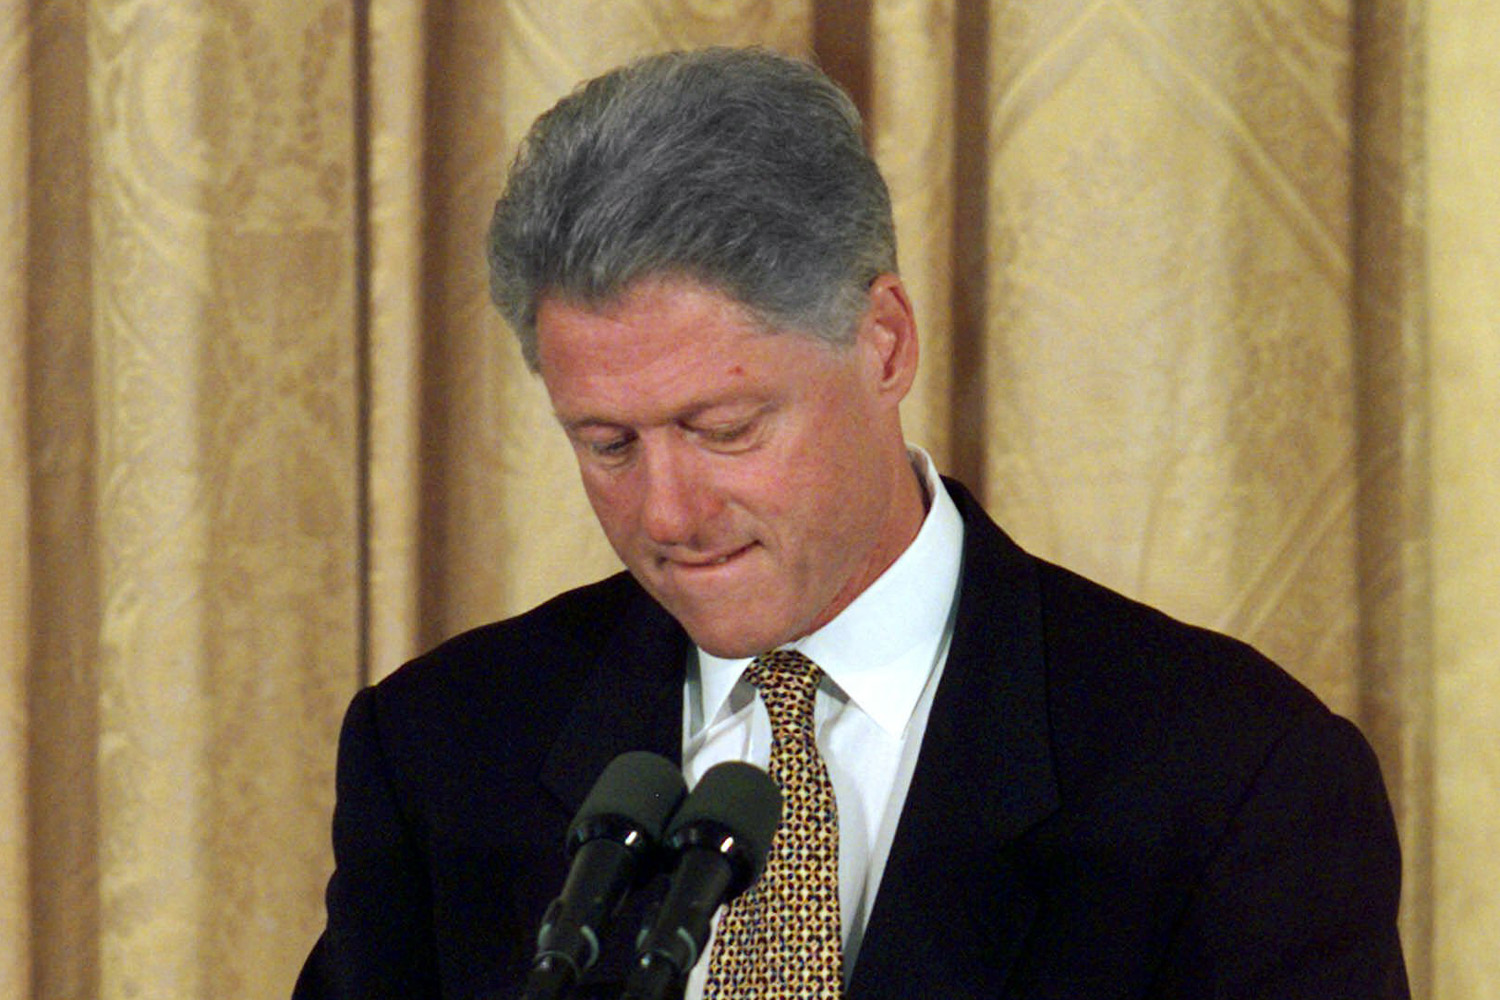 who did bill clinton cheat with